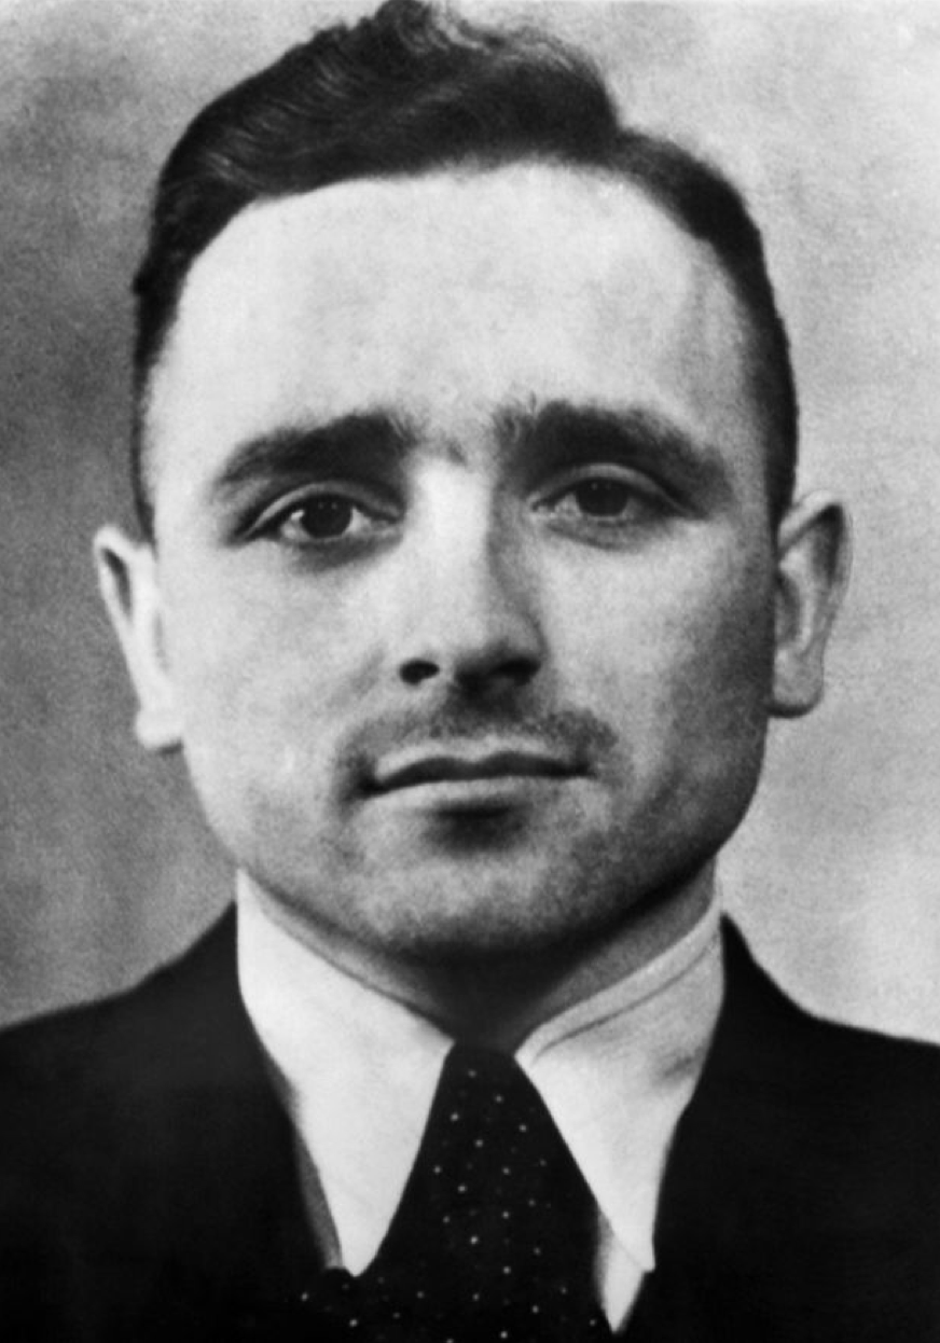 Klaus Barbie | Author: Wikipedia